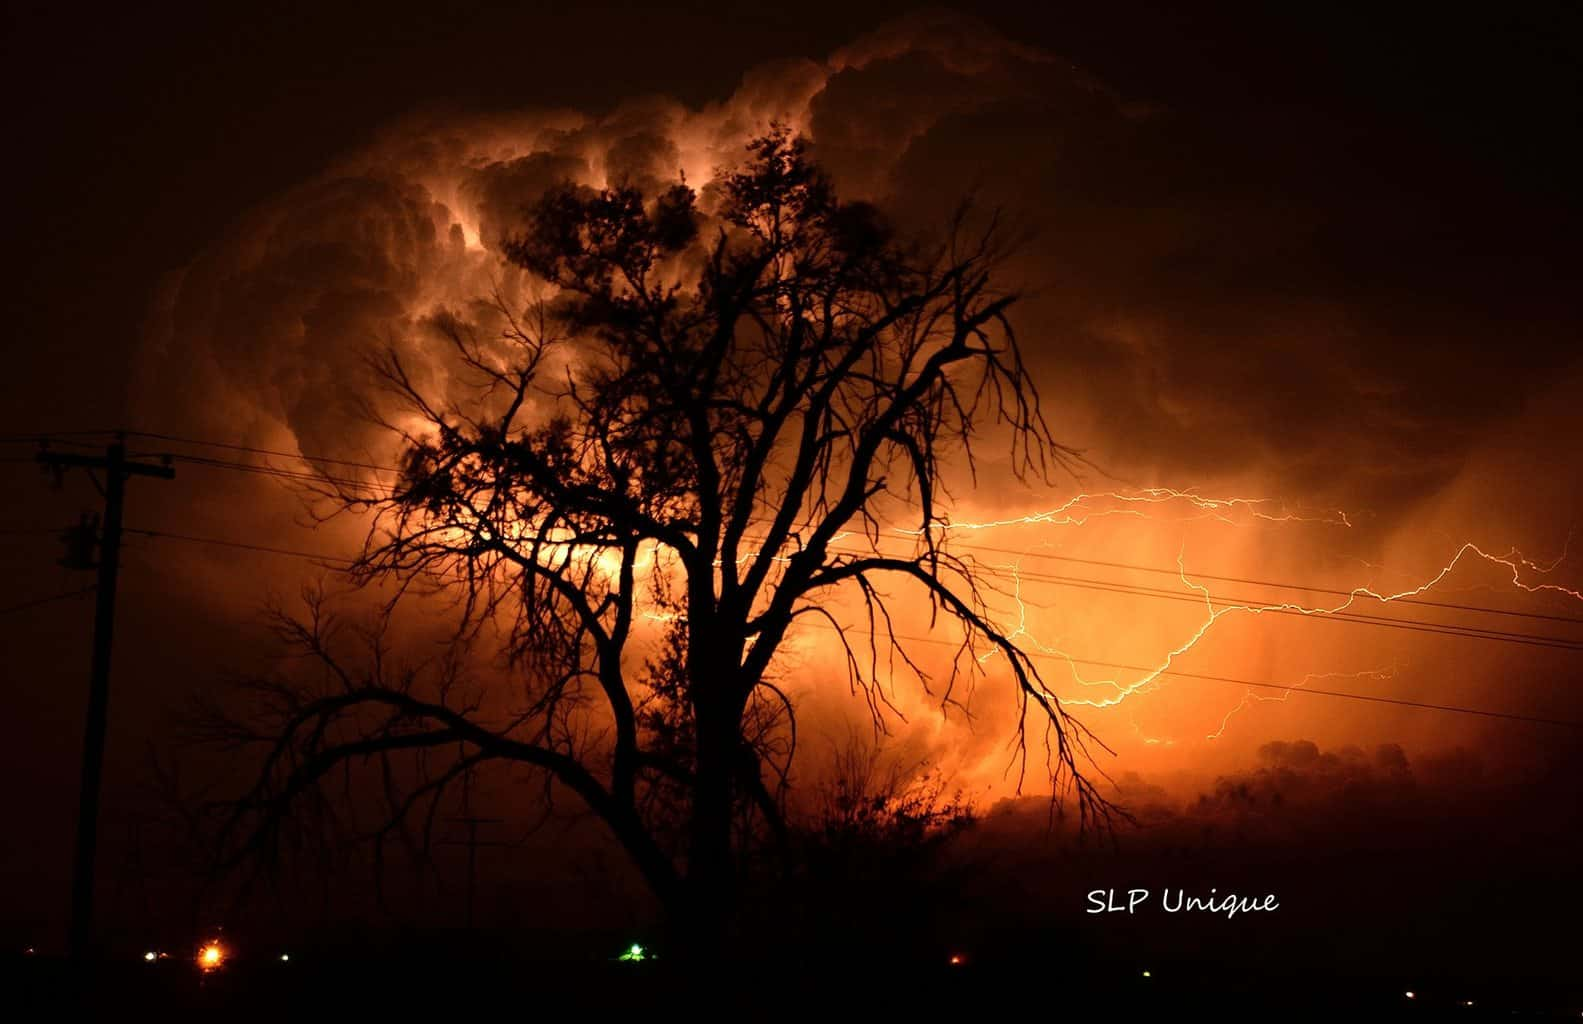 Beautiful lightning show at the back end of the super cell that produced the tornado in Pampa, Tx tonight 11/16/15. Not a stacked image.